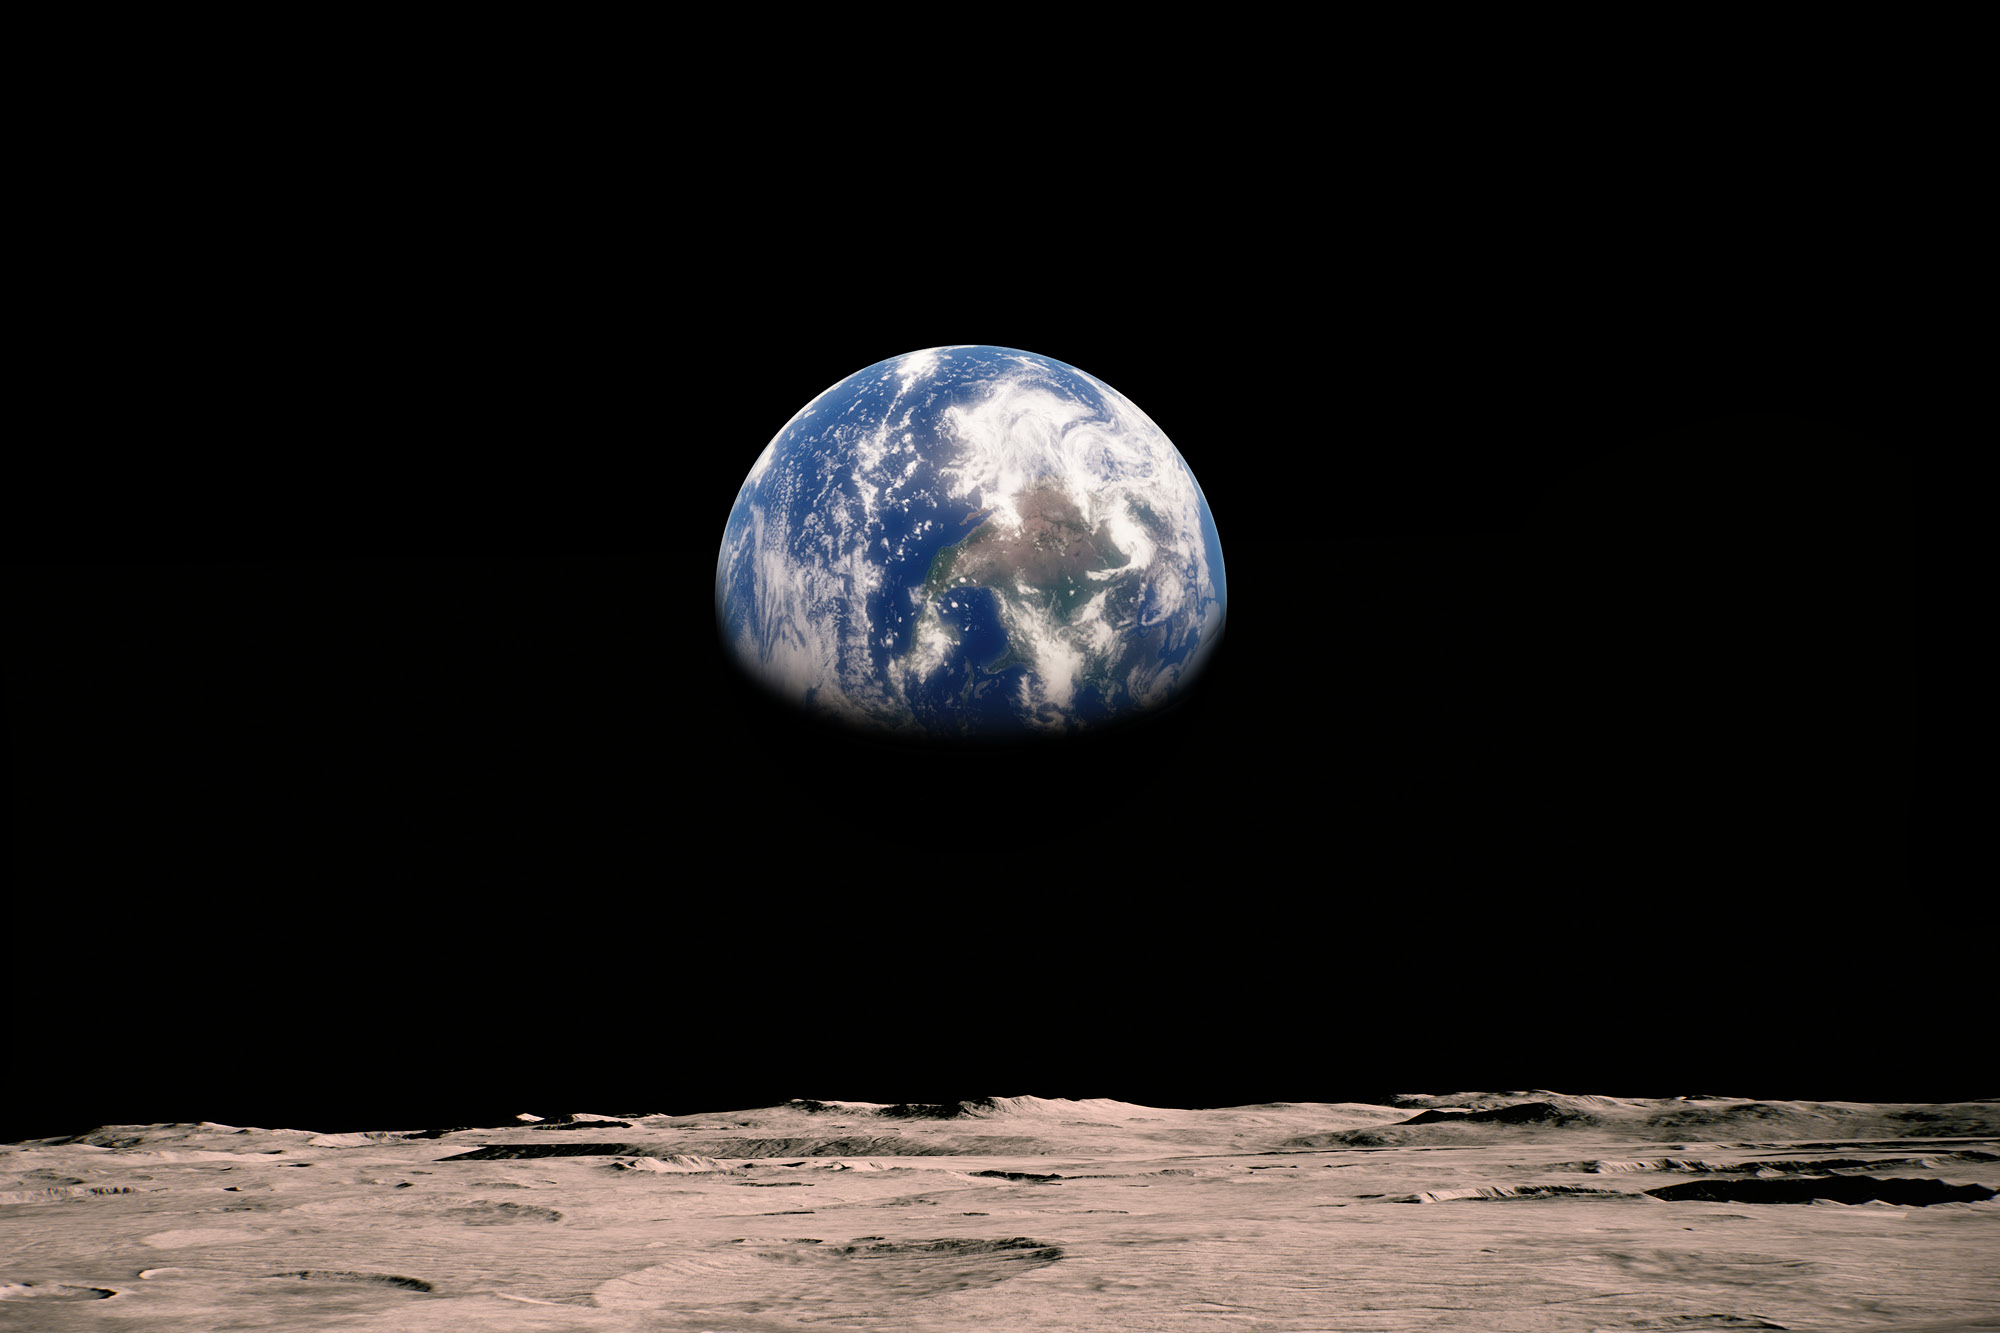 Photo of the earth taken from the moon.